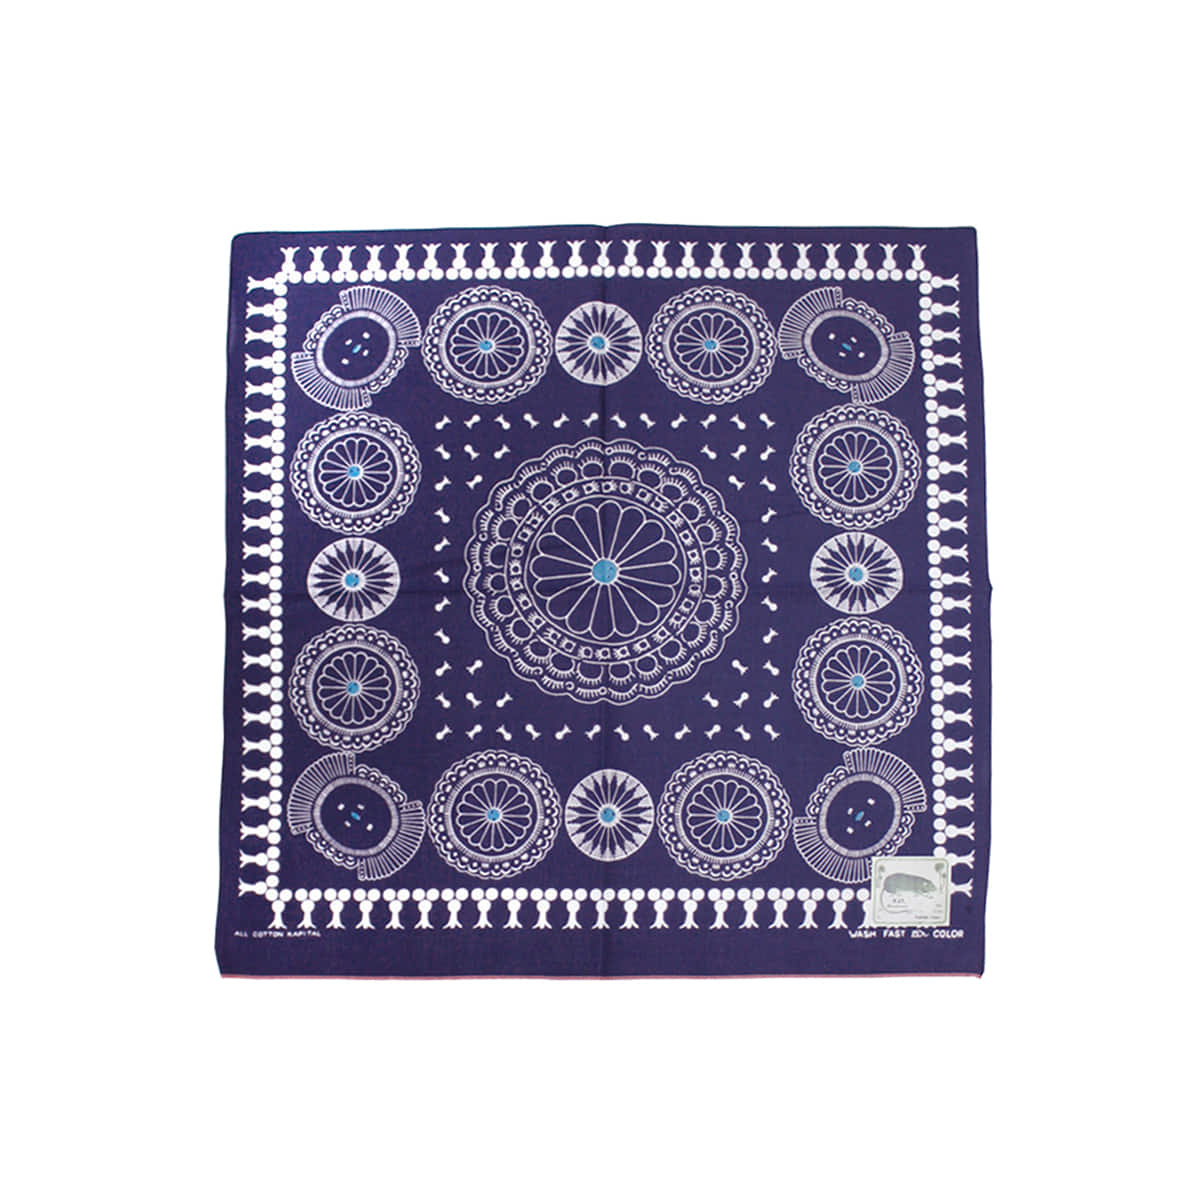 [KAPITAL] FAST COLOR SELVEDGE BANDANA (CONCHO) 'PURPLE'